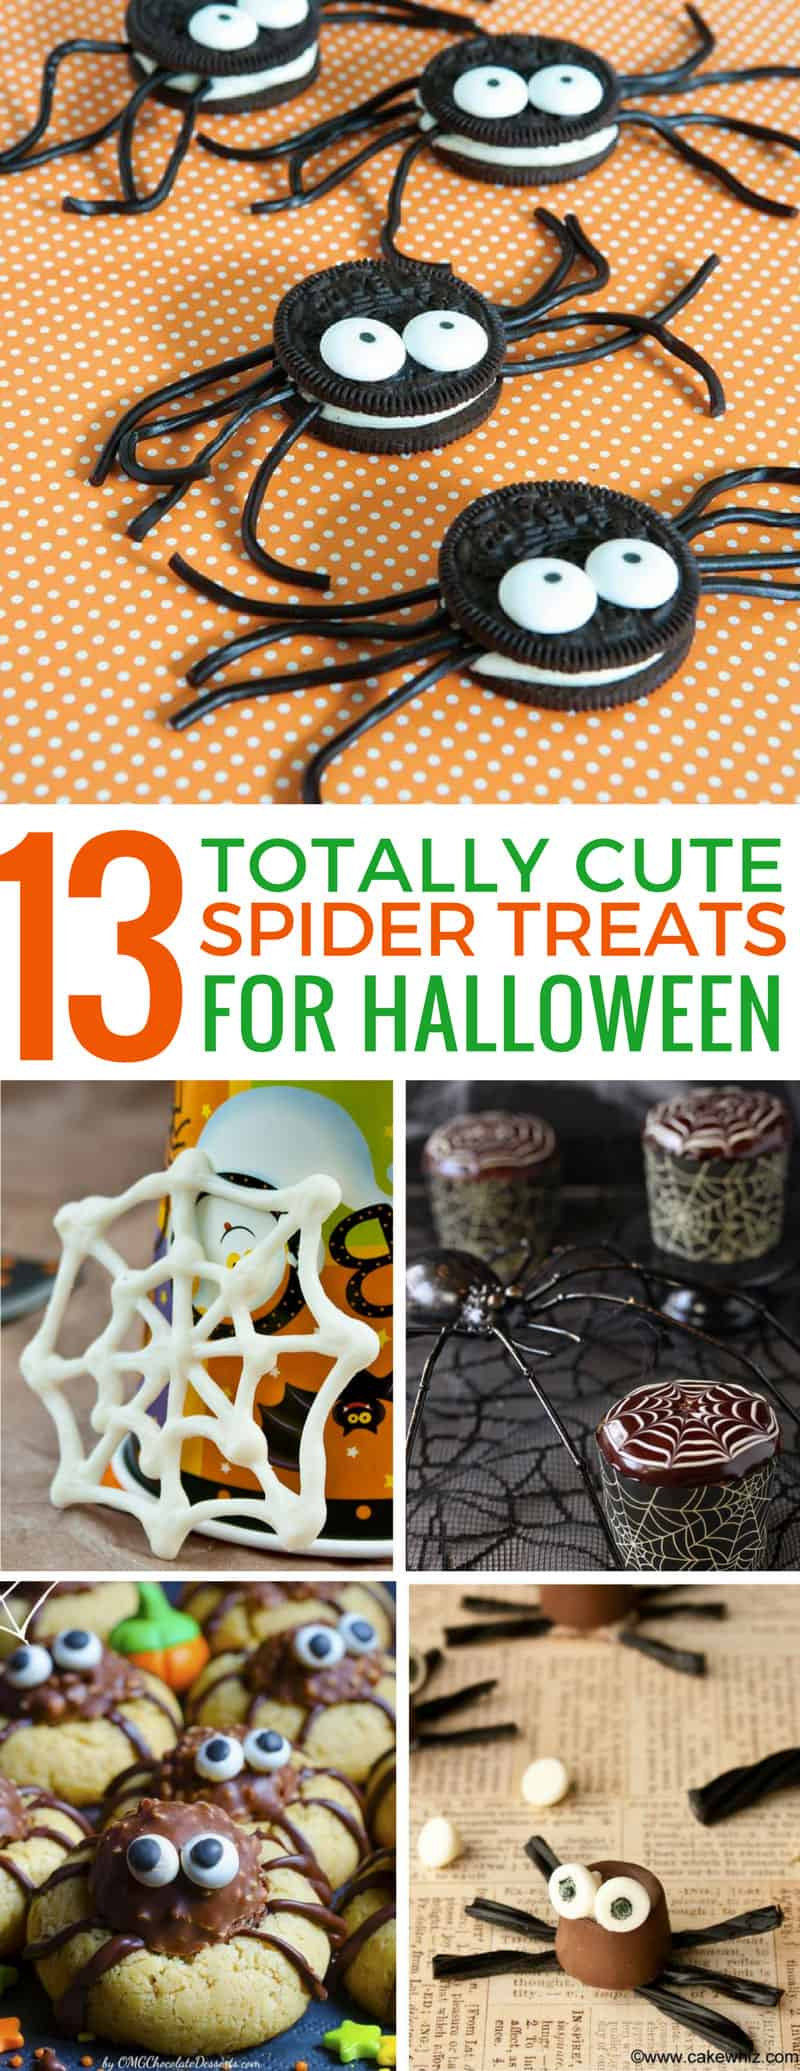 How adorable are these Halloween spider treats! Can't wait to make them with my kids! Thanks for sharing!